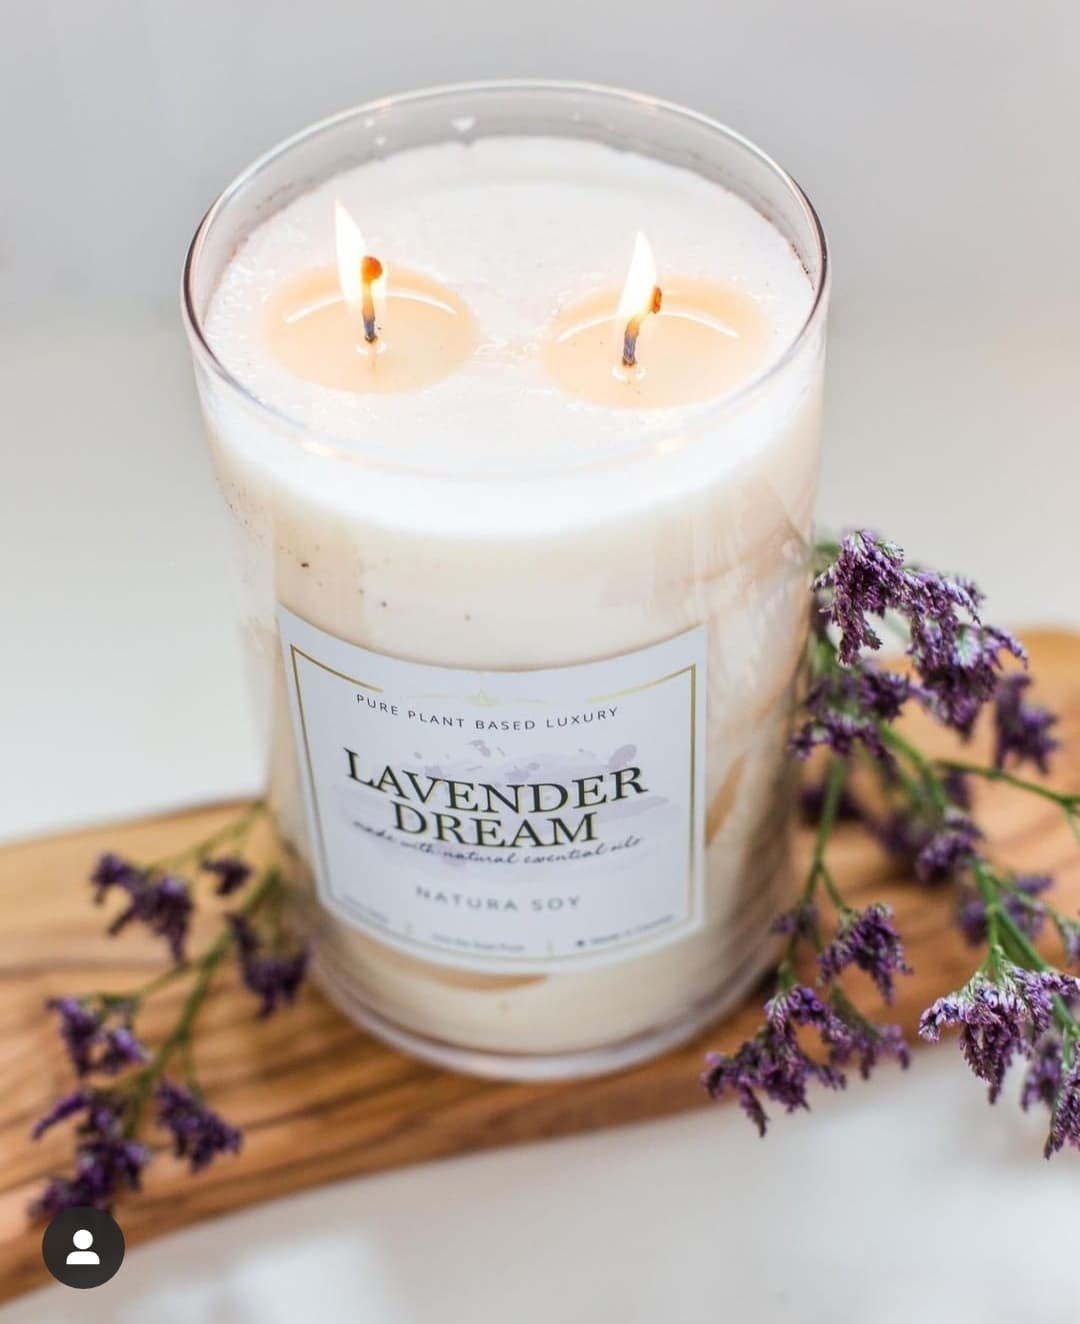 A luxurious blend of Lavender, light Patchouli and mellow Vanilla.